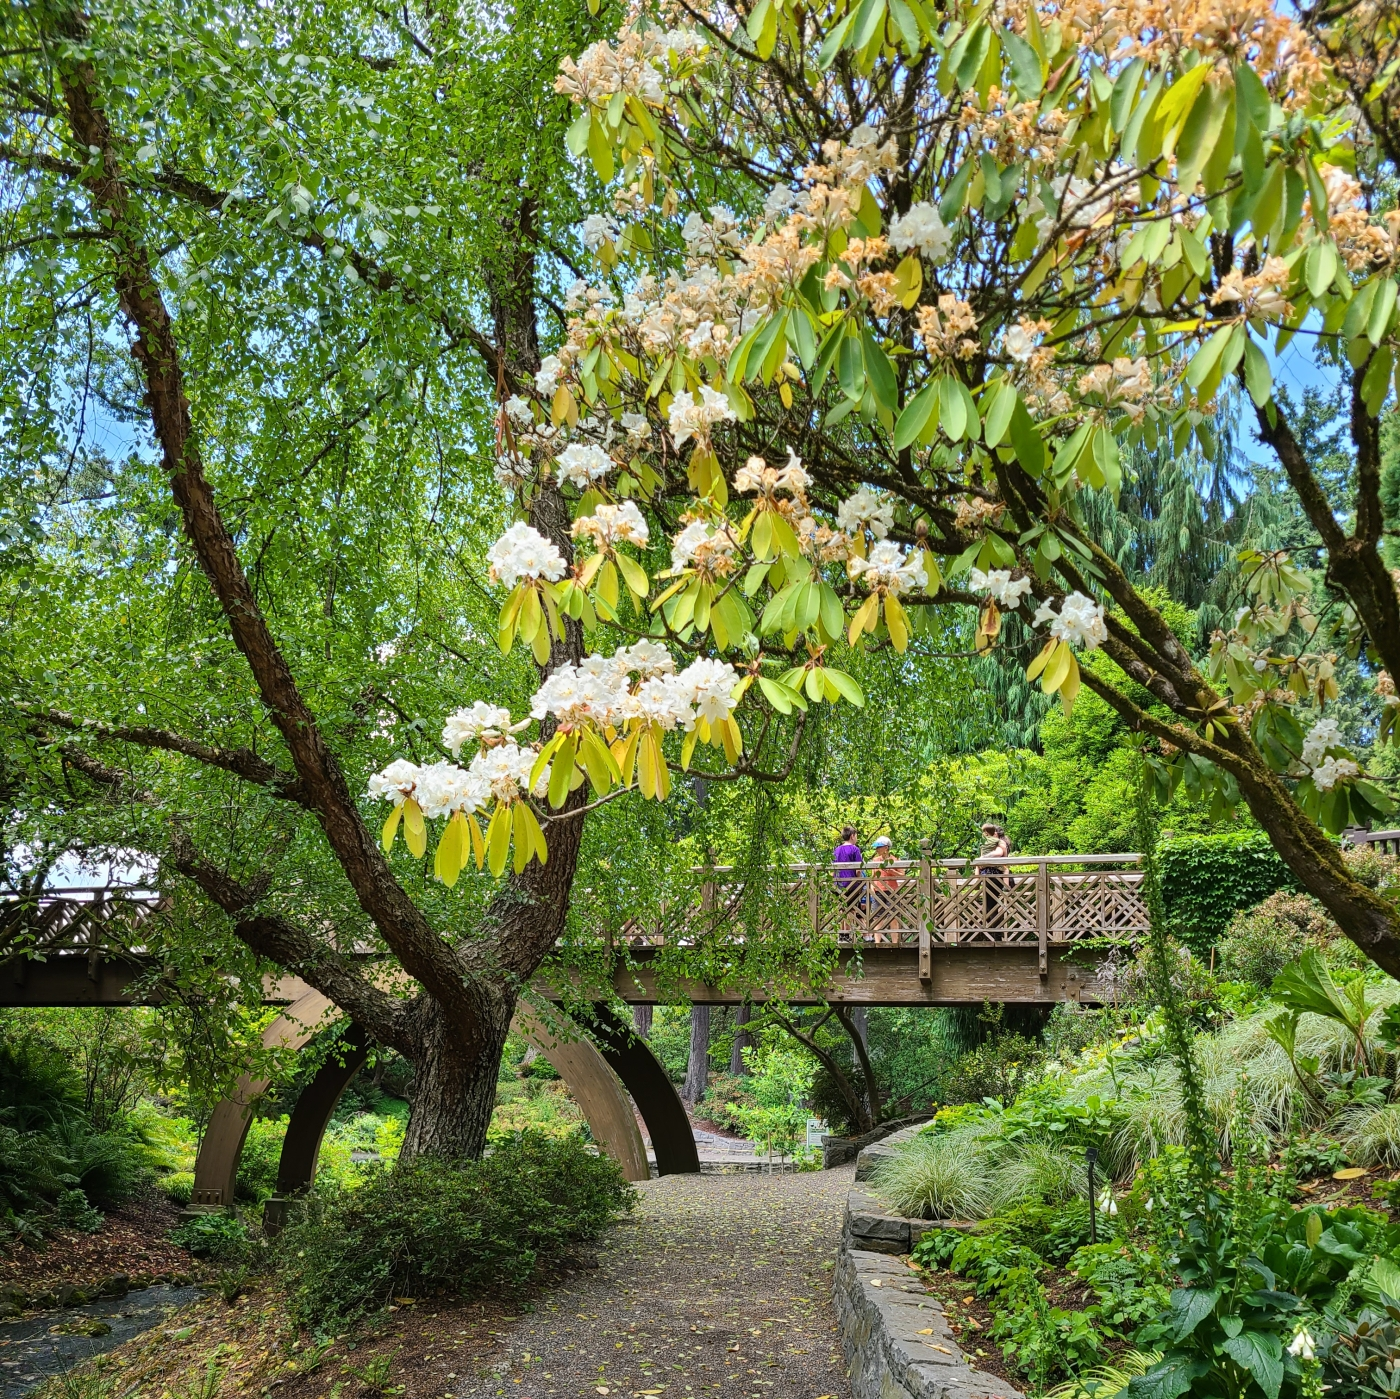 White rhododendrons bloom over the path below a bridge at Crystal Springs Rhododendron Garden